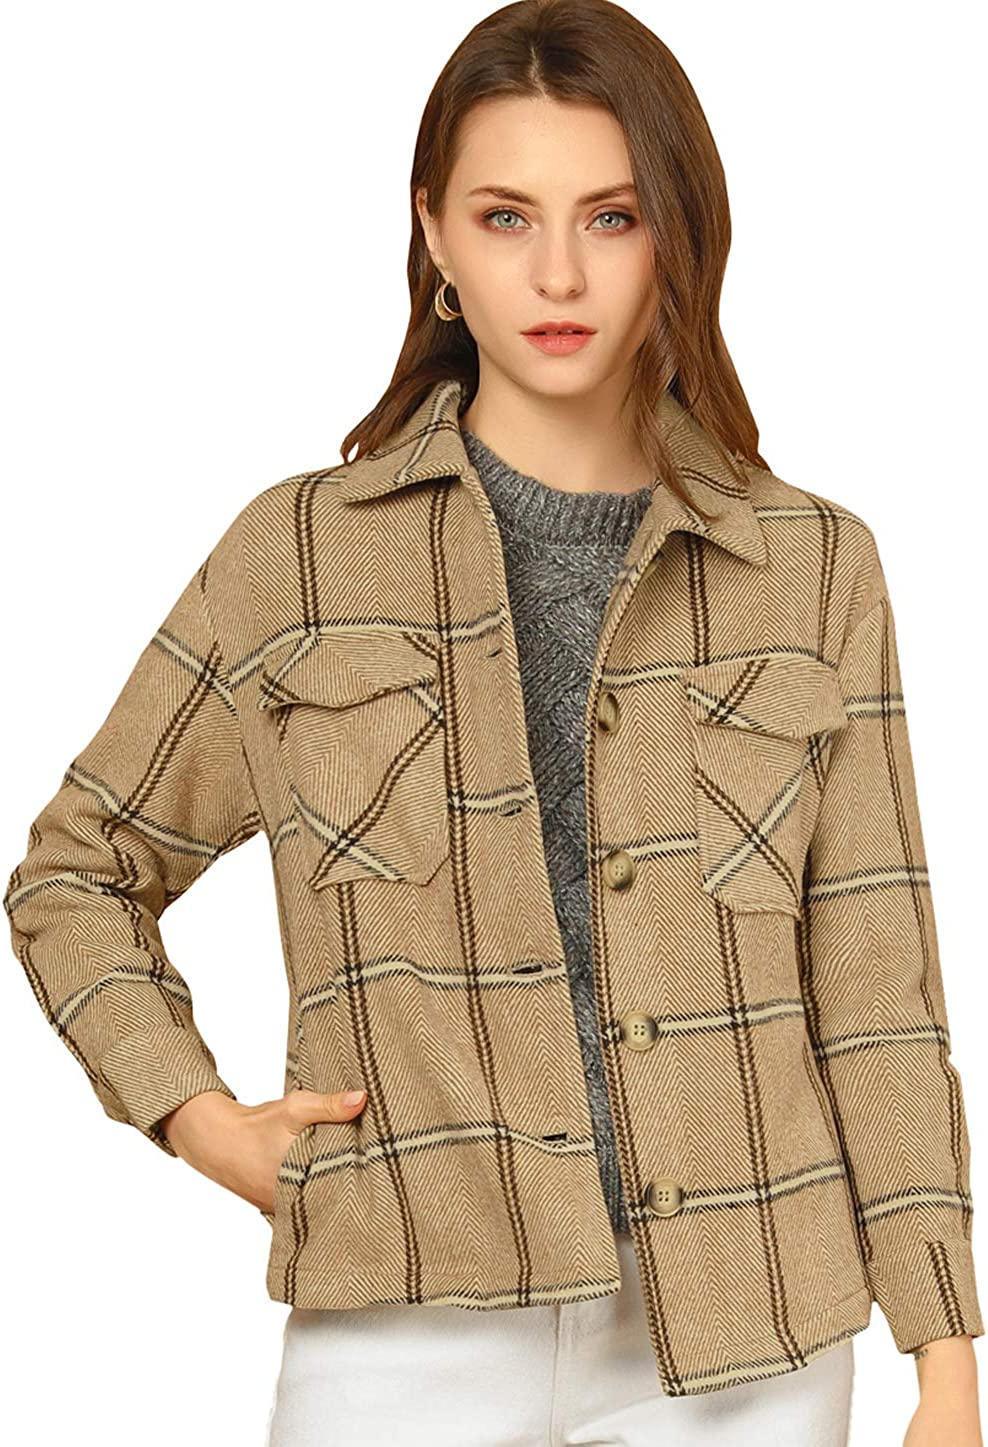 Allegra K Women's Button Down Single supreme Collar Coat Large special price !! Outerw Breasted